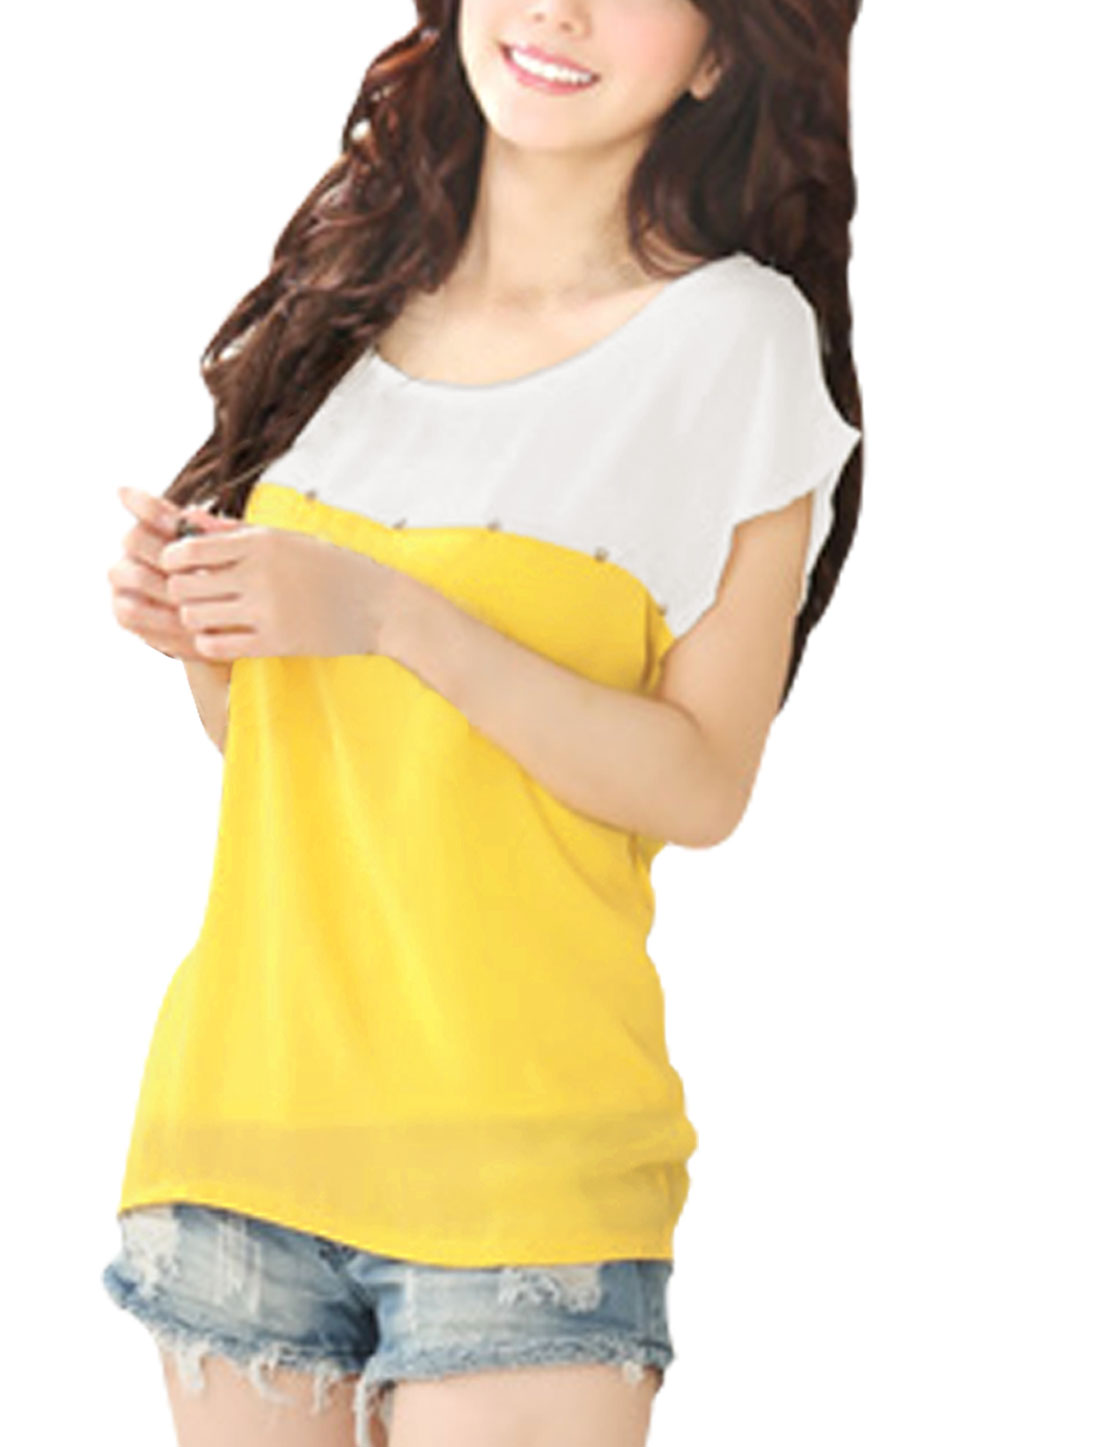 Lady Chic Round Neck Short Dolman Sleeve Yellow White Blouse M